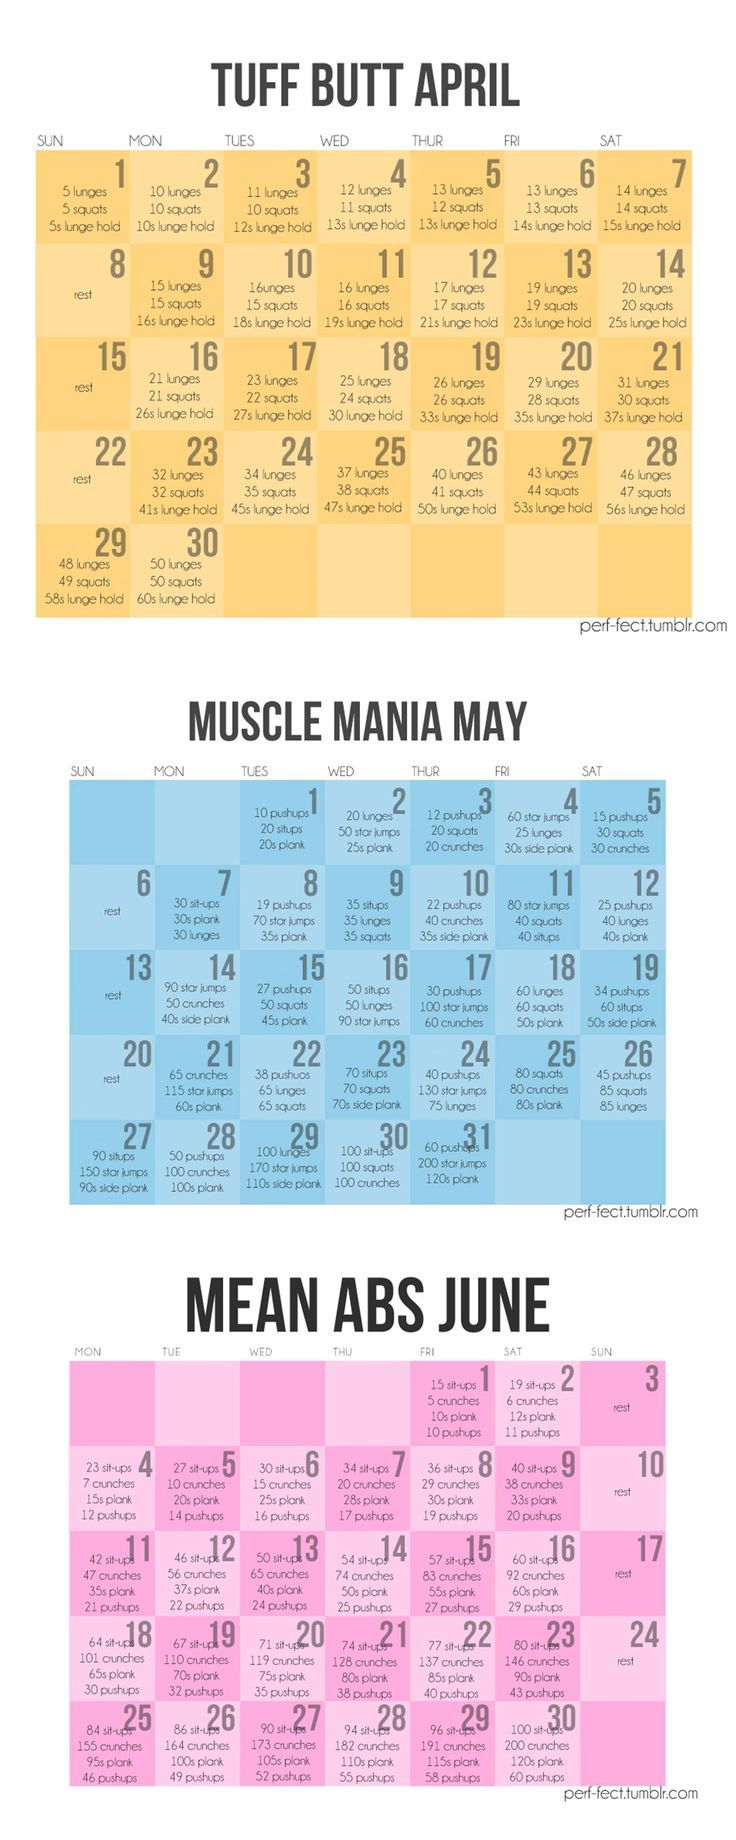 A friend of mine recently posted on social media that she wanted to get ready for summer and was going to do a 90 day challenge. I thought it was a great idea, but I wanted to be realistic about w…